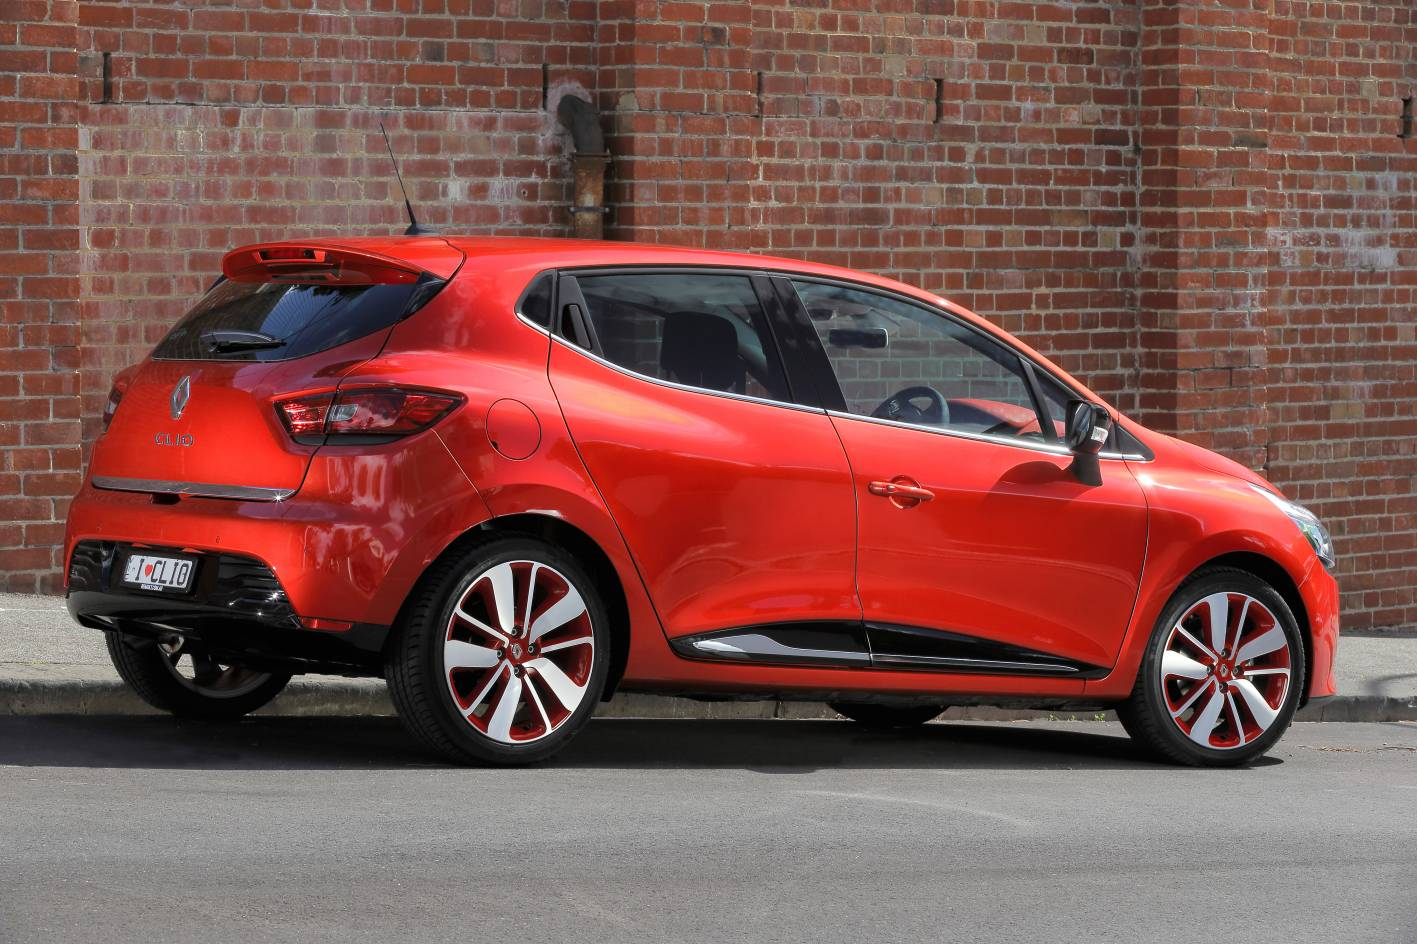 2014 renault clio iv pictures information and specs. Black Bedroom Furniture Sets. Home Design Ideas